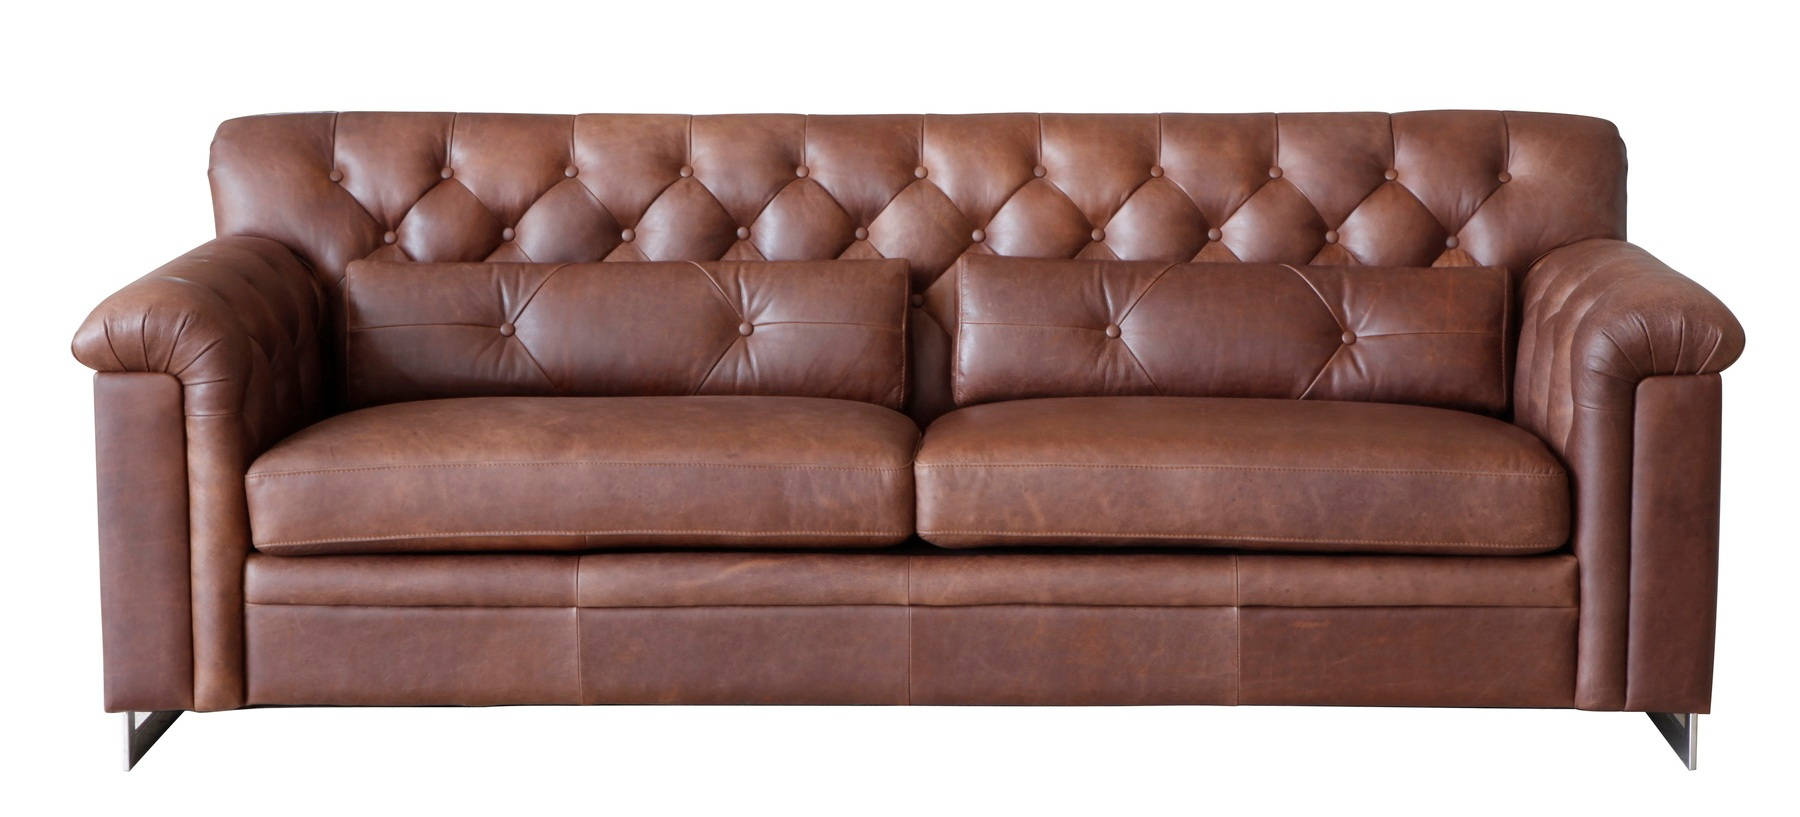 Lazzaro Hillcrest French Beige Tufted Sofa The Classy Home